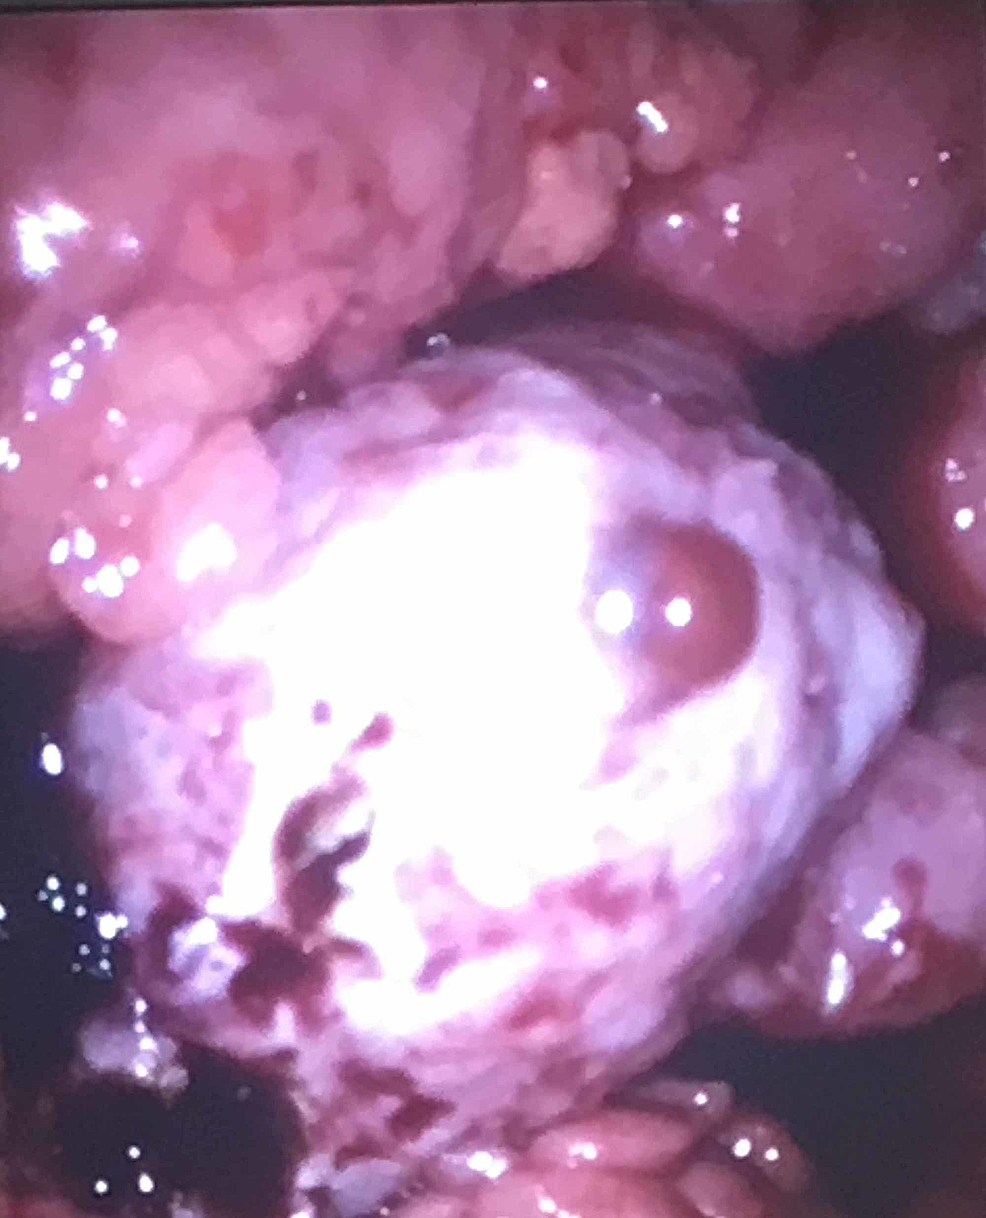 Intraoperative-view-of-the-left-ovary